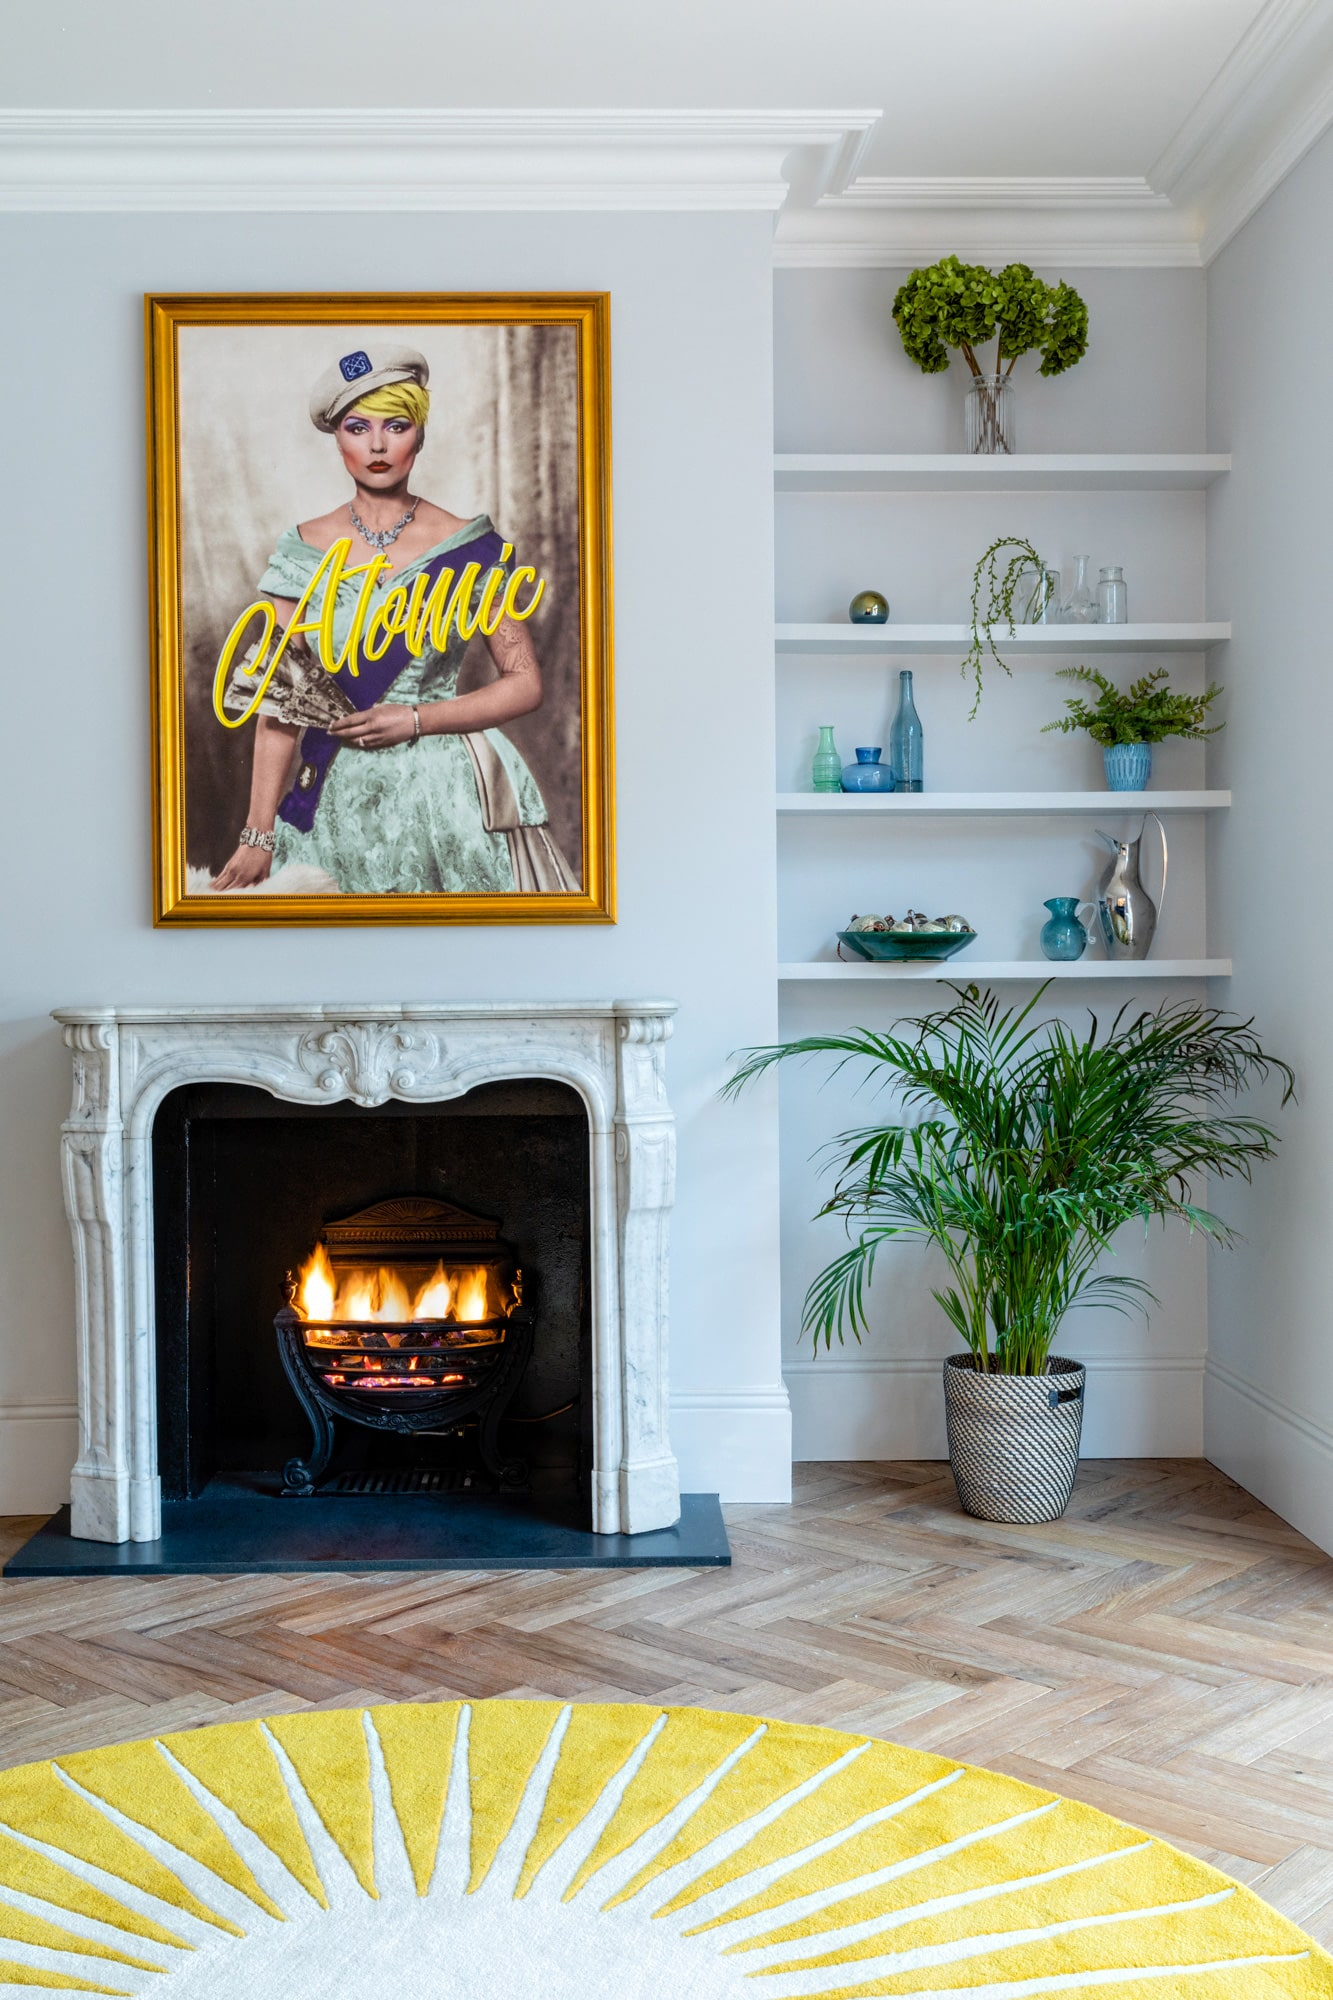 Detail interior photo: sitting room with light blue walls; picture above a fire place with Debbie Harry with a sign